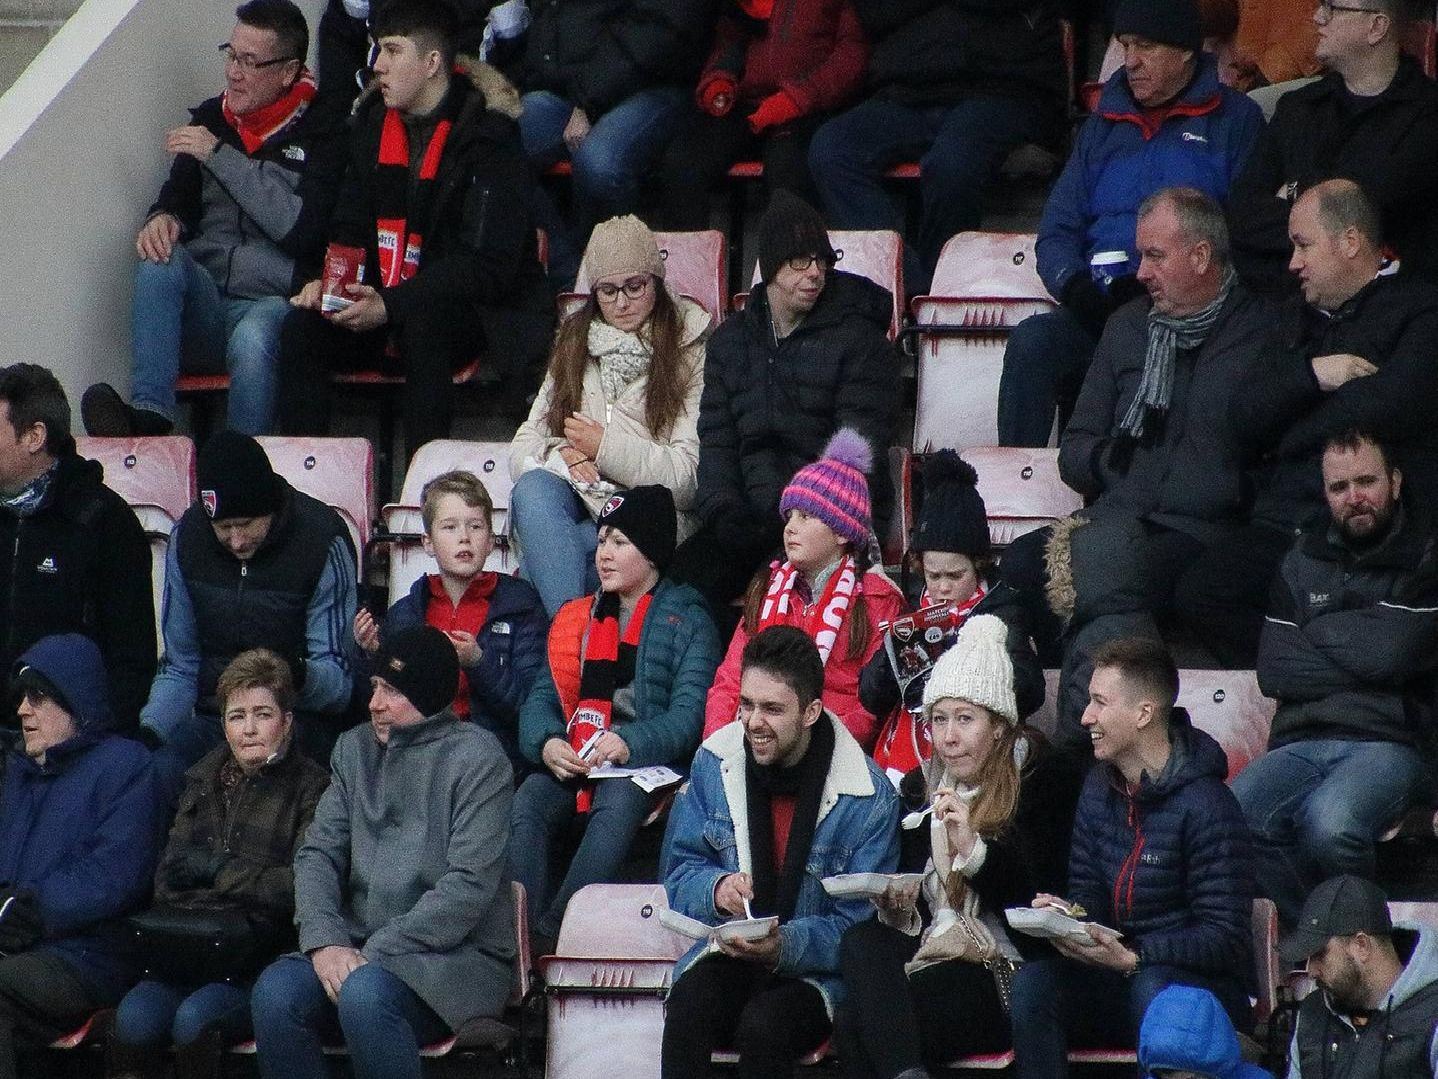 Morecambe v Mansfield Town fan photos.